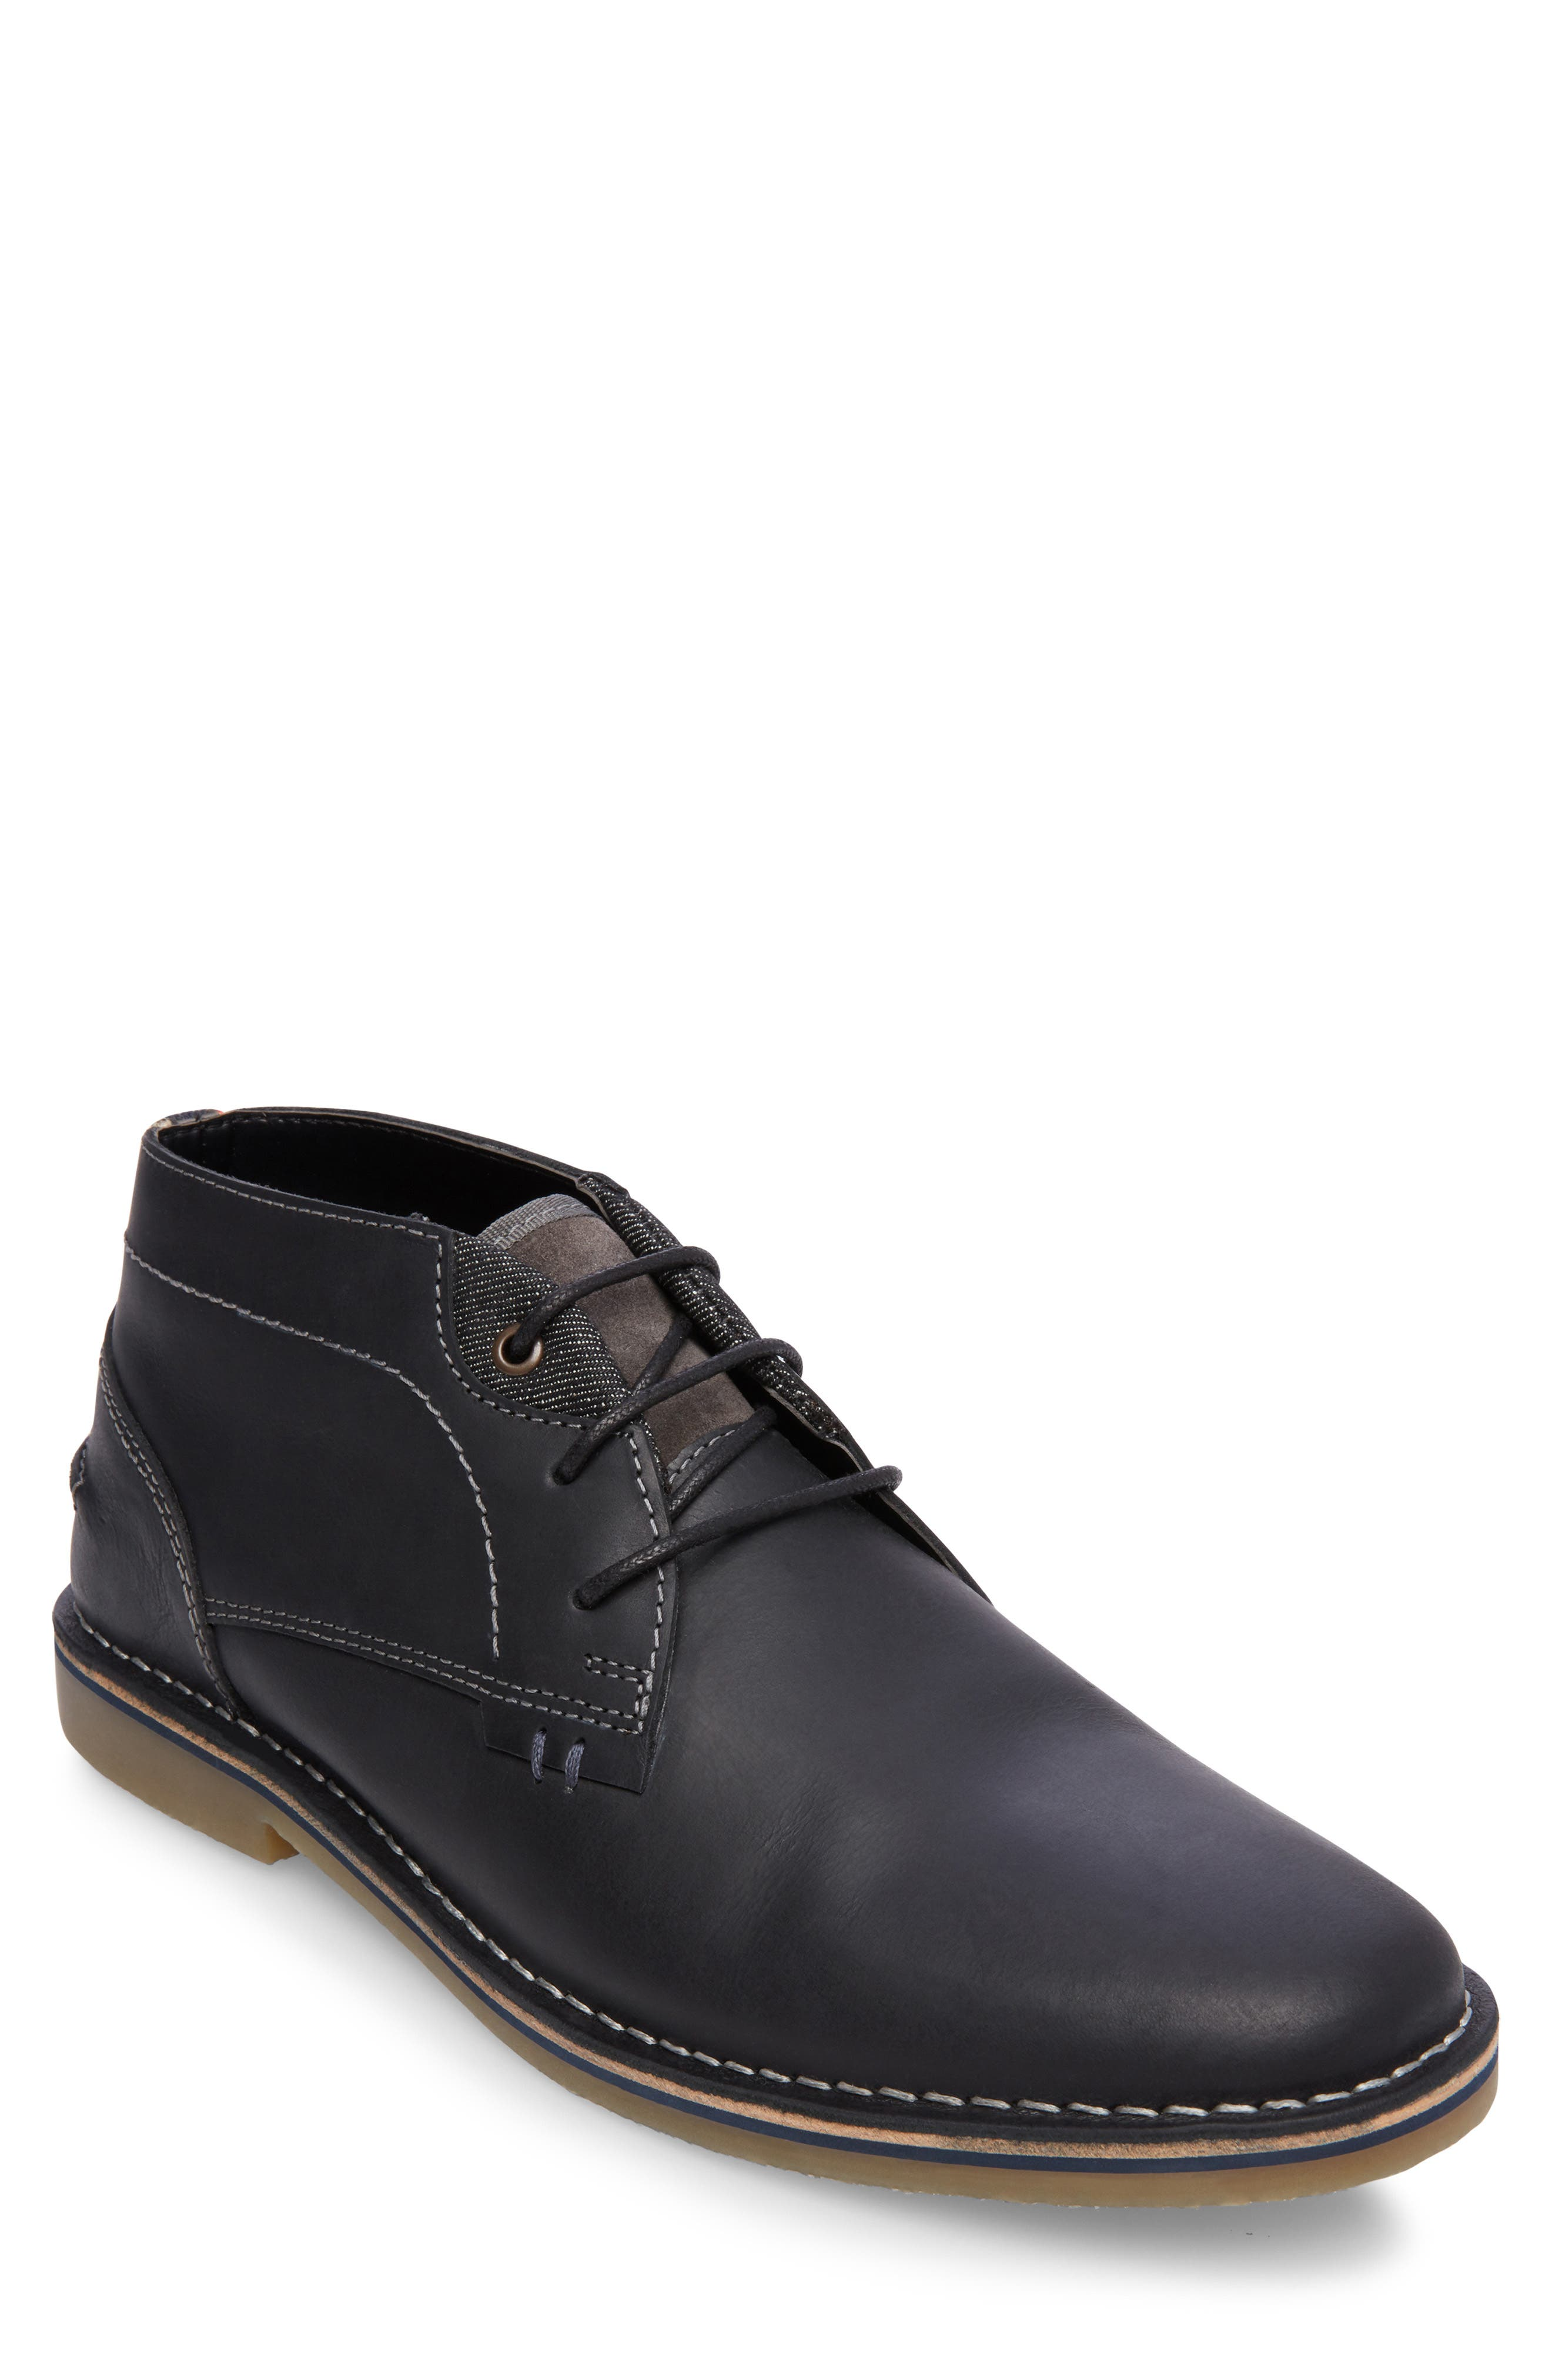 Steve Madden Hinton Chukka Boot- Black